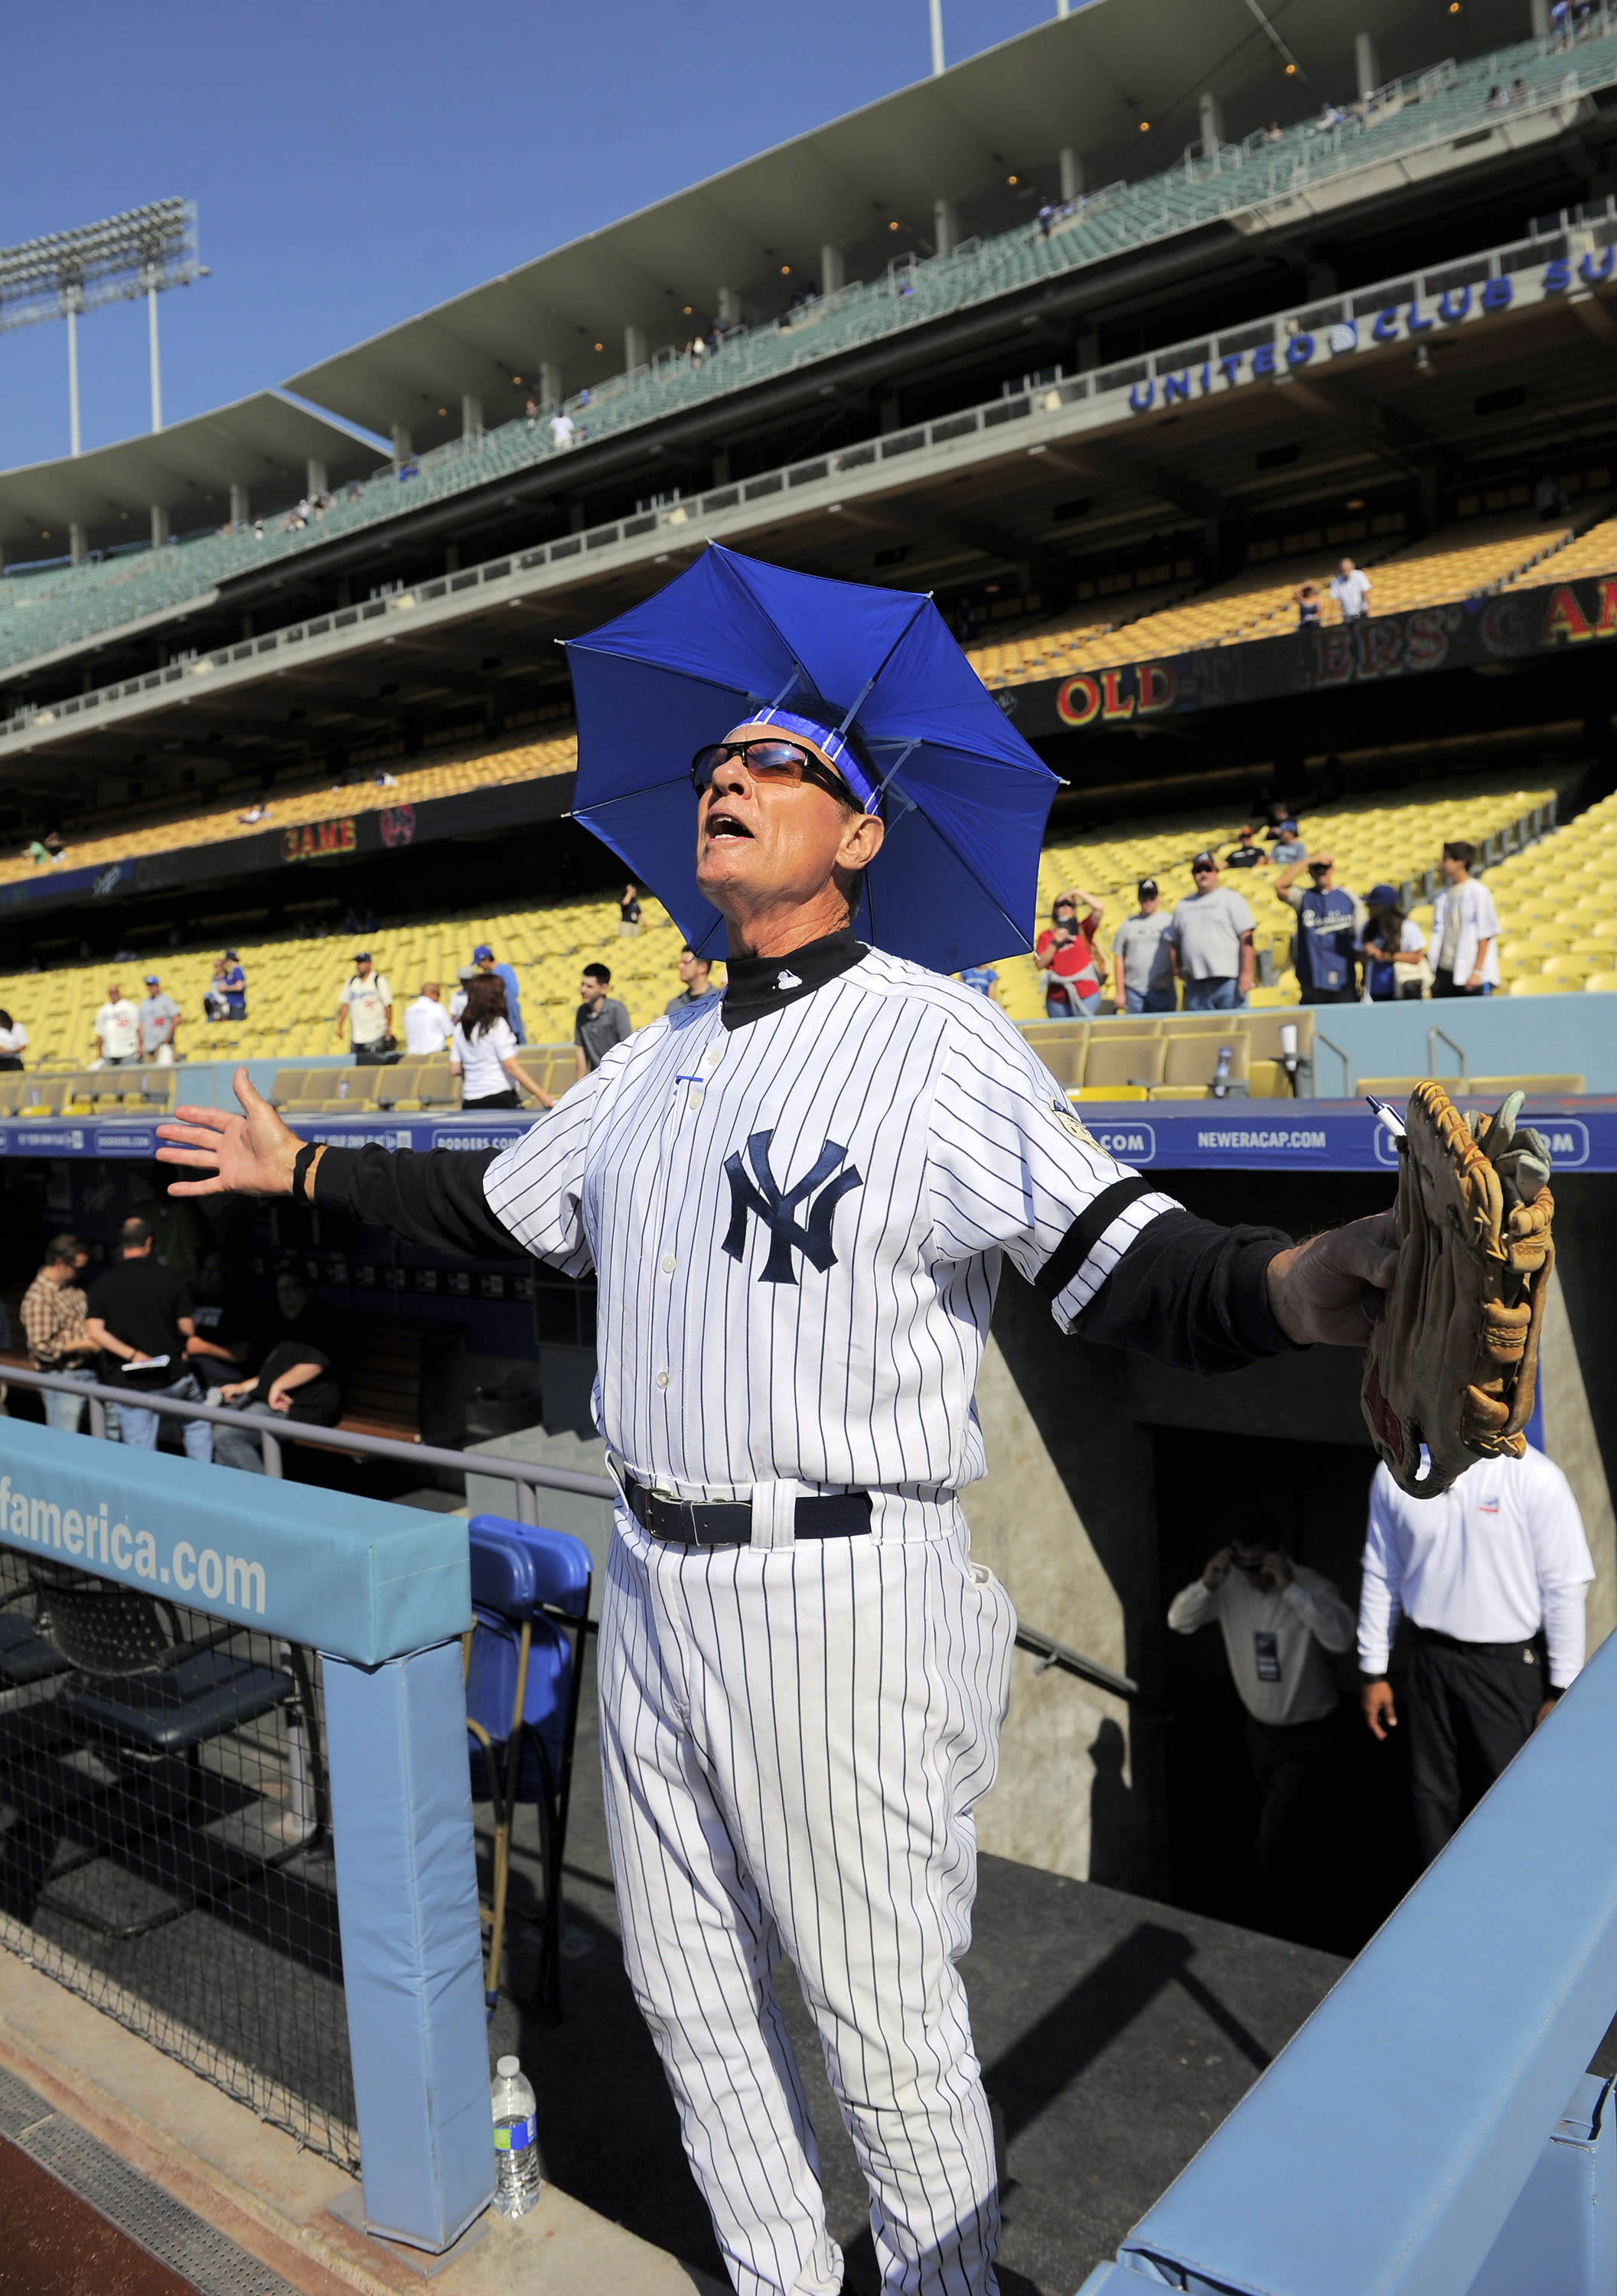 FILE- In this June 8, 2013, file photo, Jay Johnstone walks out of the dugout during batting practice prior to the Old-Timers baseball game in Los Angeles. Johnstone, who won World Series championships as a versatile outfielder with the New York Yankees and Los Angeles Dodgers while being baseball's merry prankster, died Saturday, Sept. 26, of complications from COVID-19 at a nursing home in Granada Hills, Calif., his daughter Mary Jayne Sarah Johnstone said Monday, Sept. 28, 2020. He was 74. He also from dementia in recent years, his daughter said. (AP Photo/Mark J. Terrill, File)